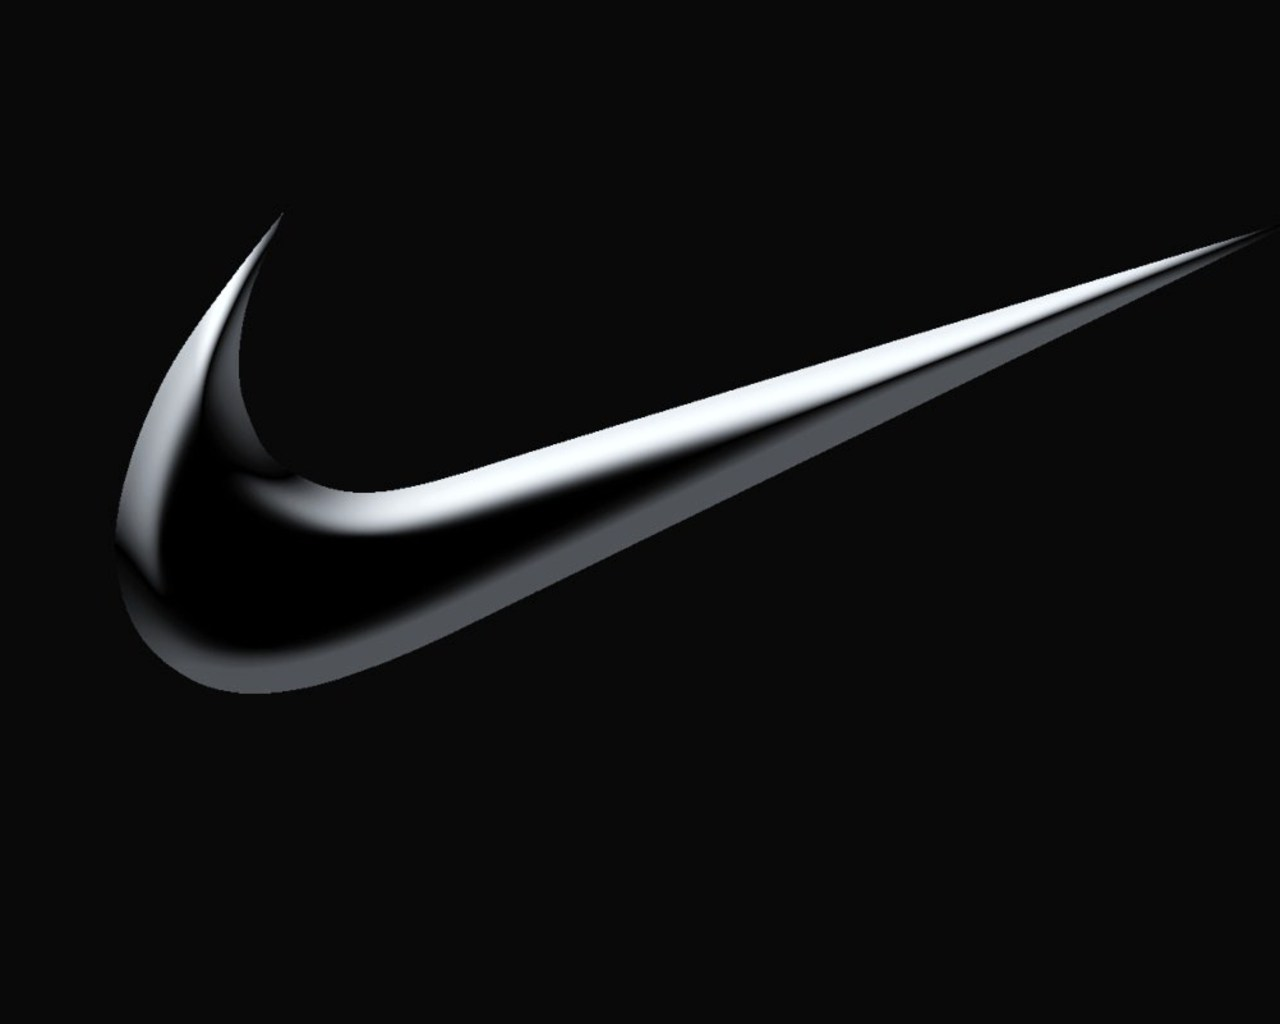 Nike Cool Wallpapers 3764   Amazing Wallpaperz 1280x1024